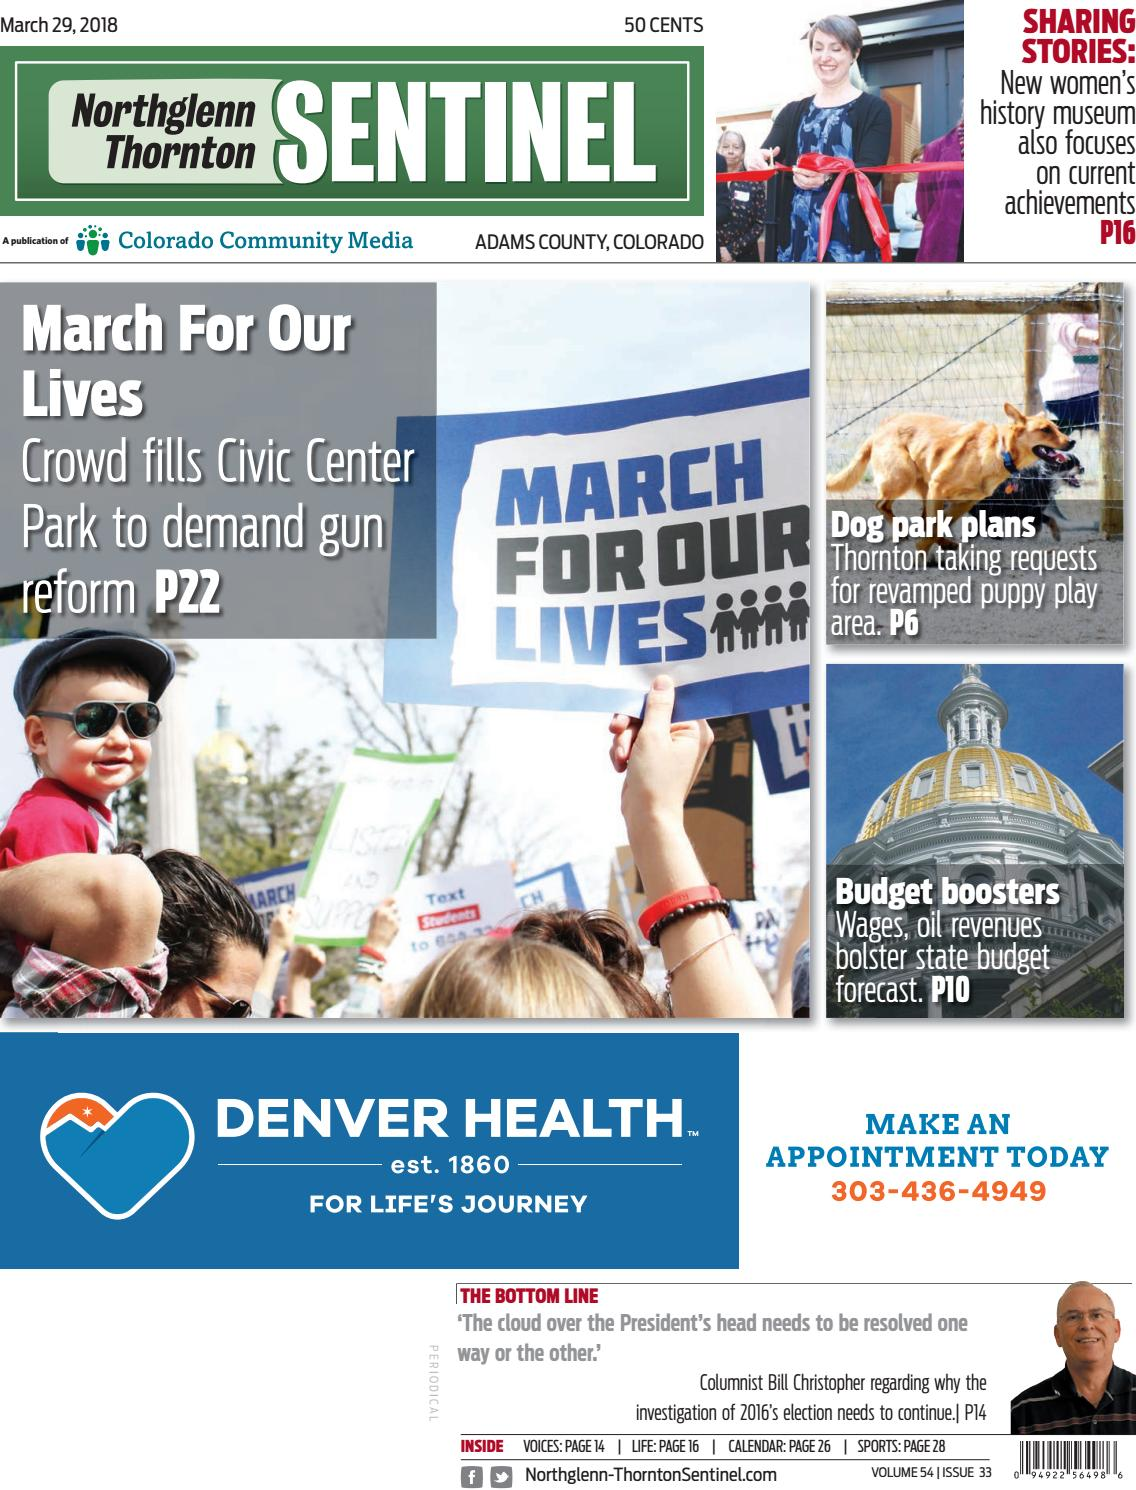 Northglenn Thornton Sentinel 0329 by Colorado Community Media - issuu